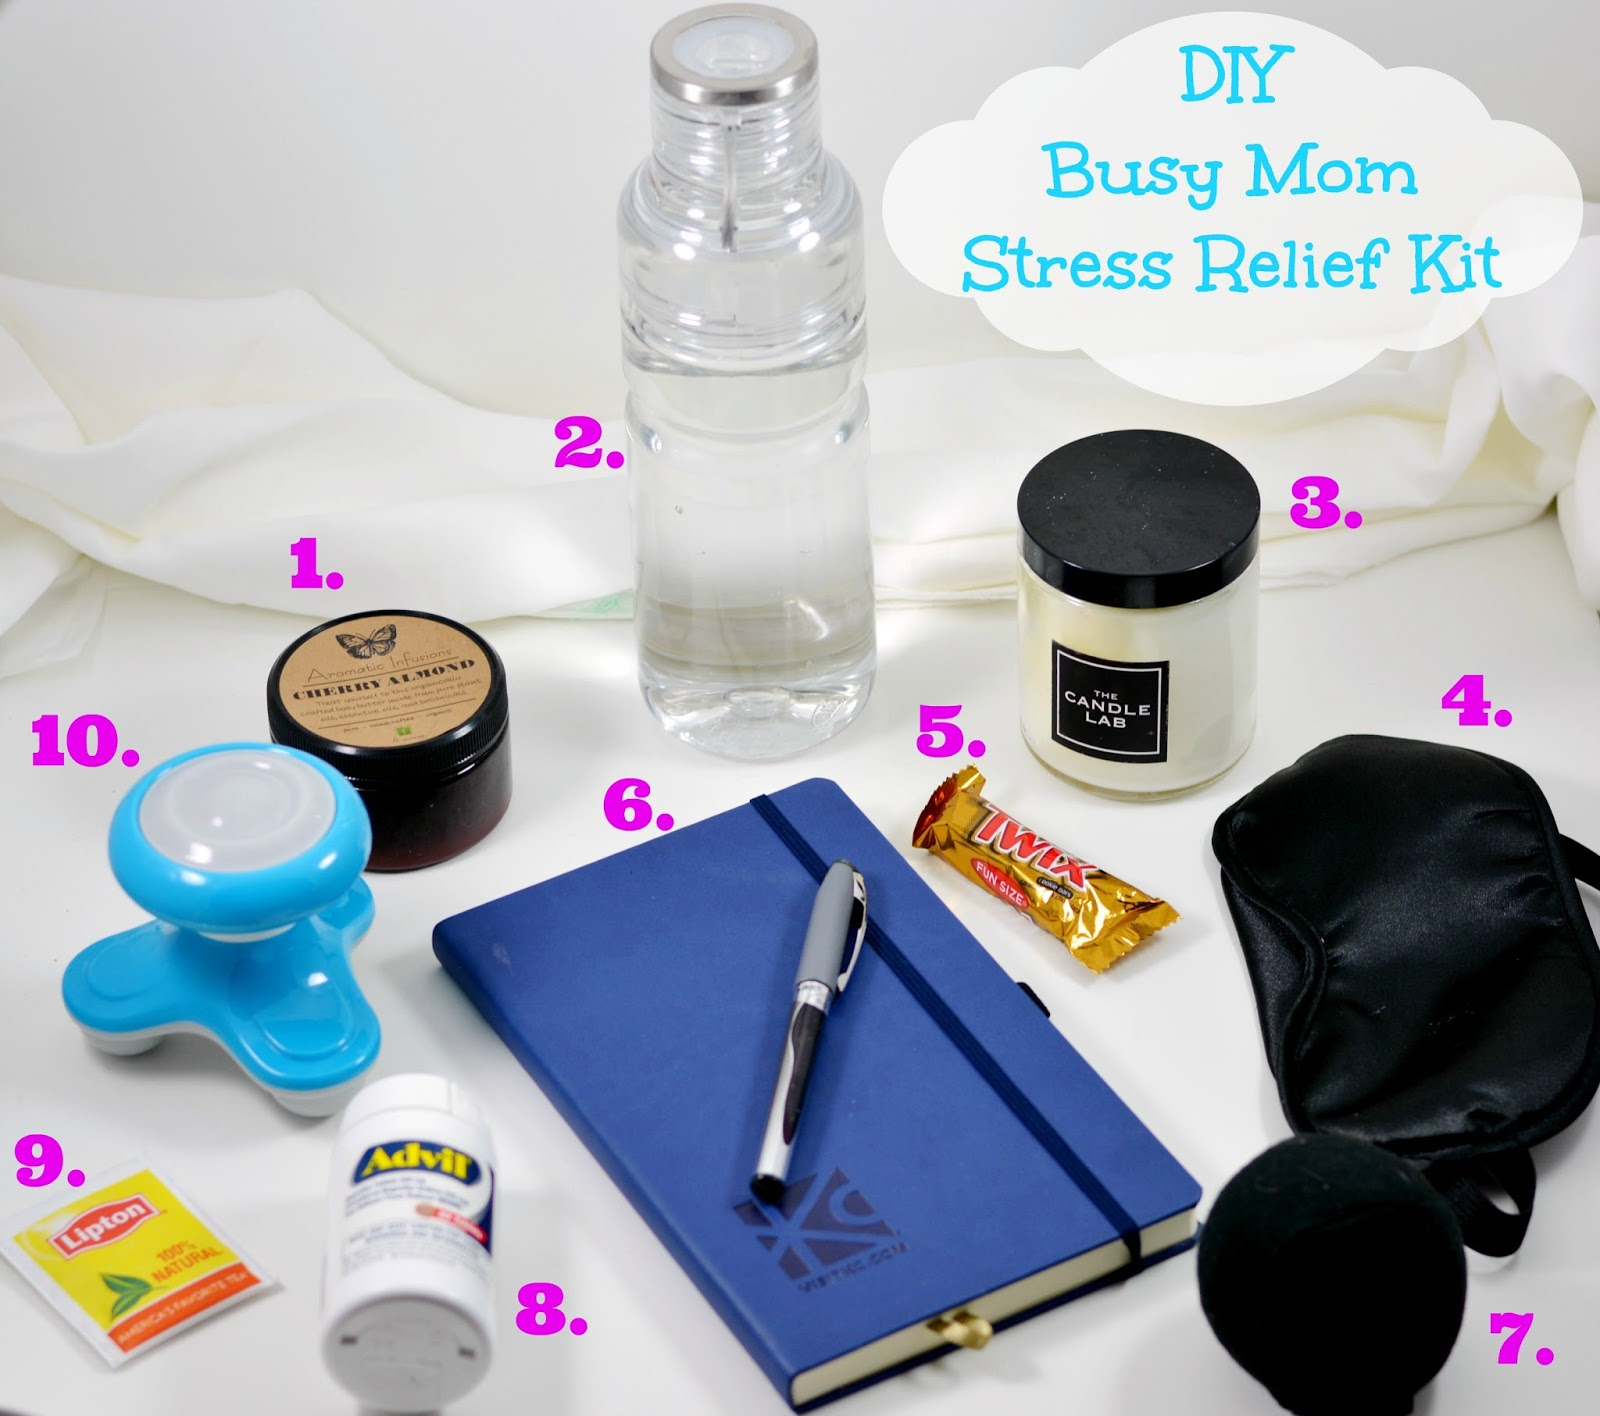 can take stress relief kit